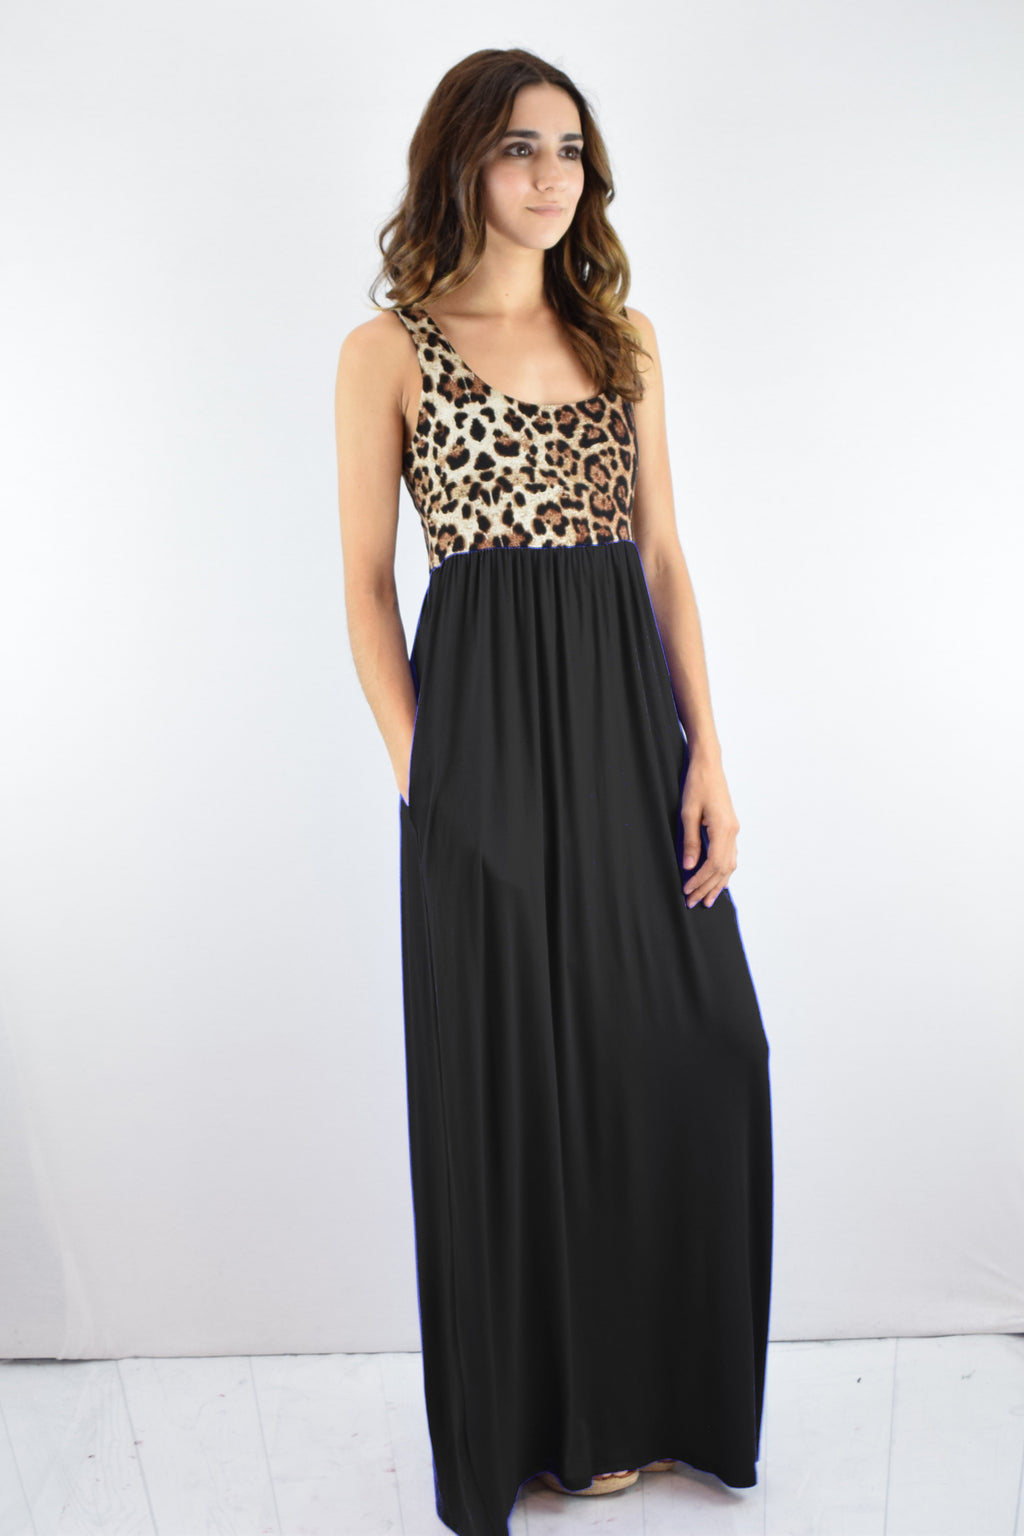 Leopard & Solid Black Sleeveless Maxi Dress